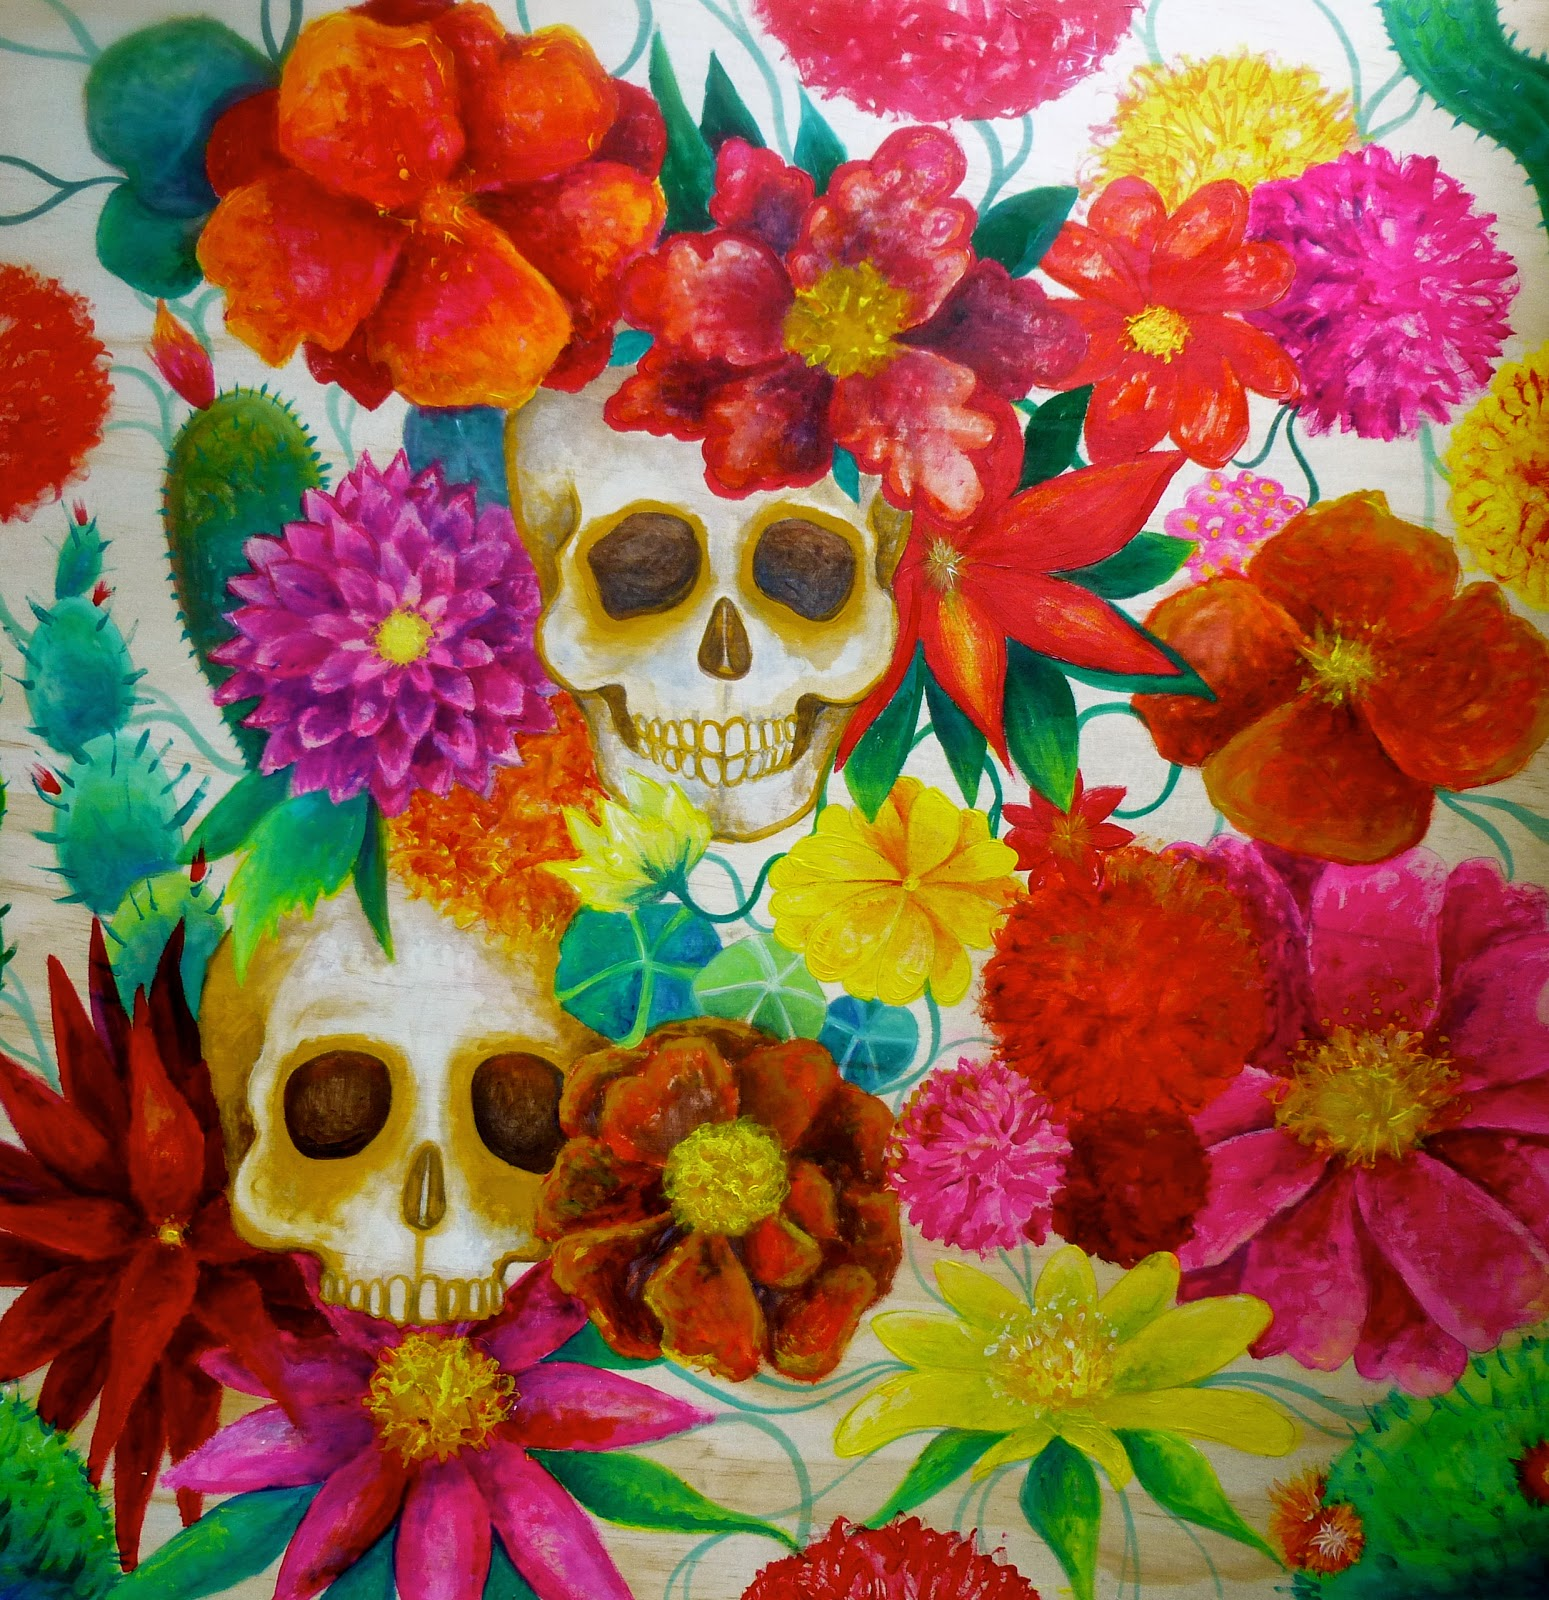 artist illustrator of all thing magical and creative Mexican flower & s